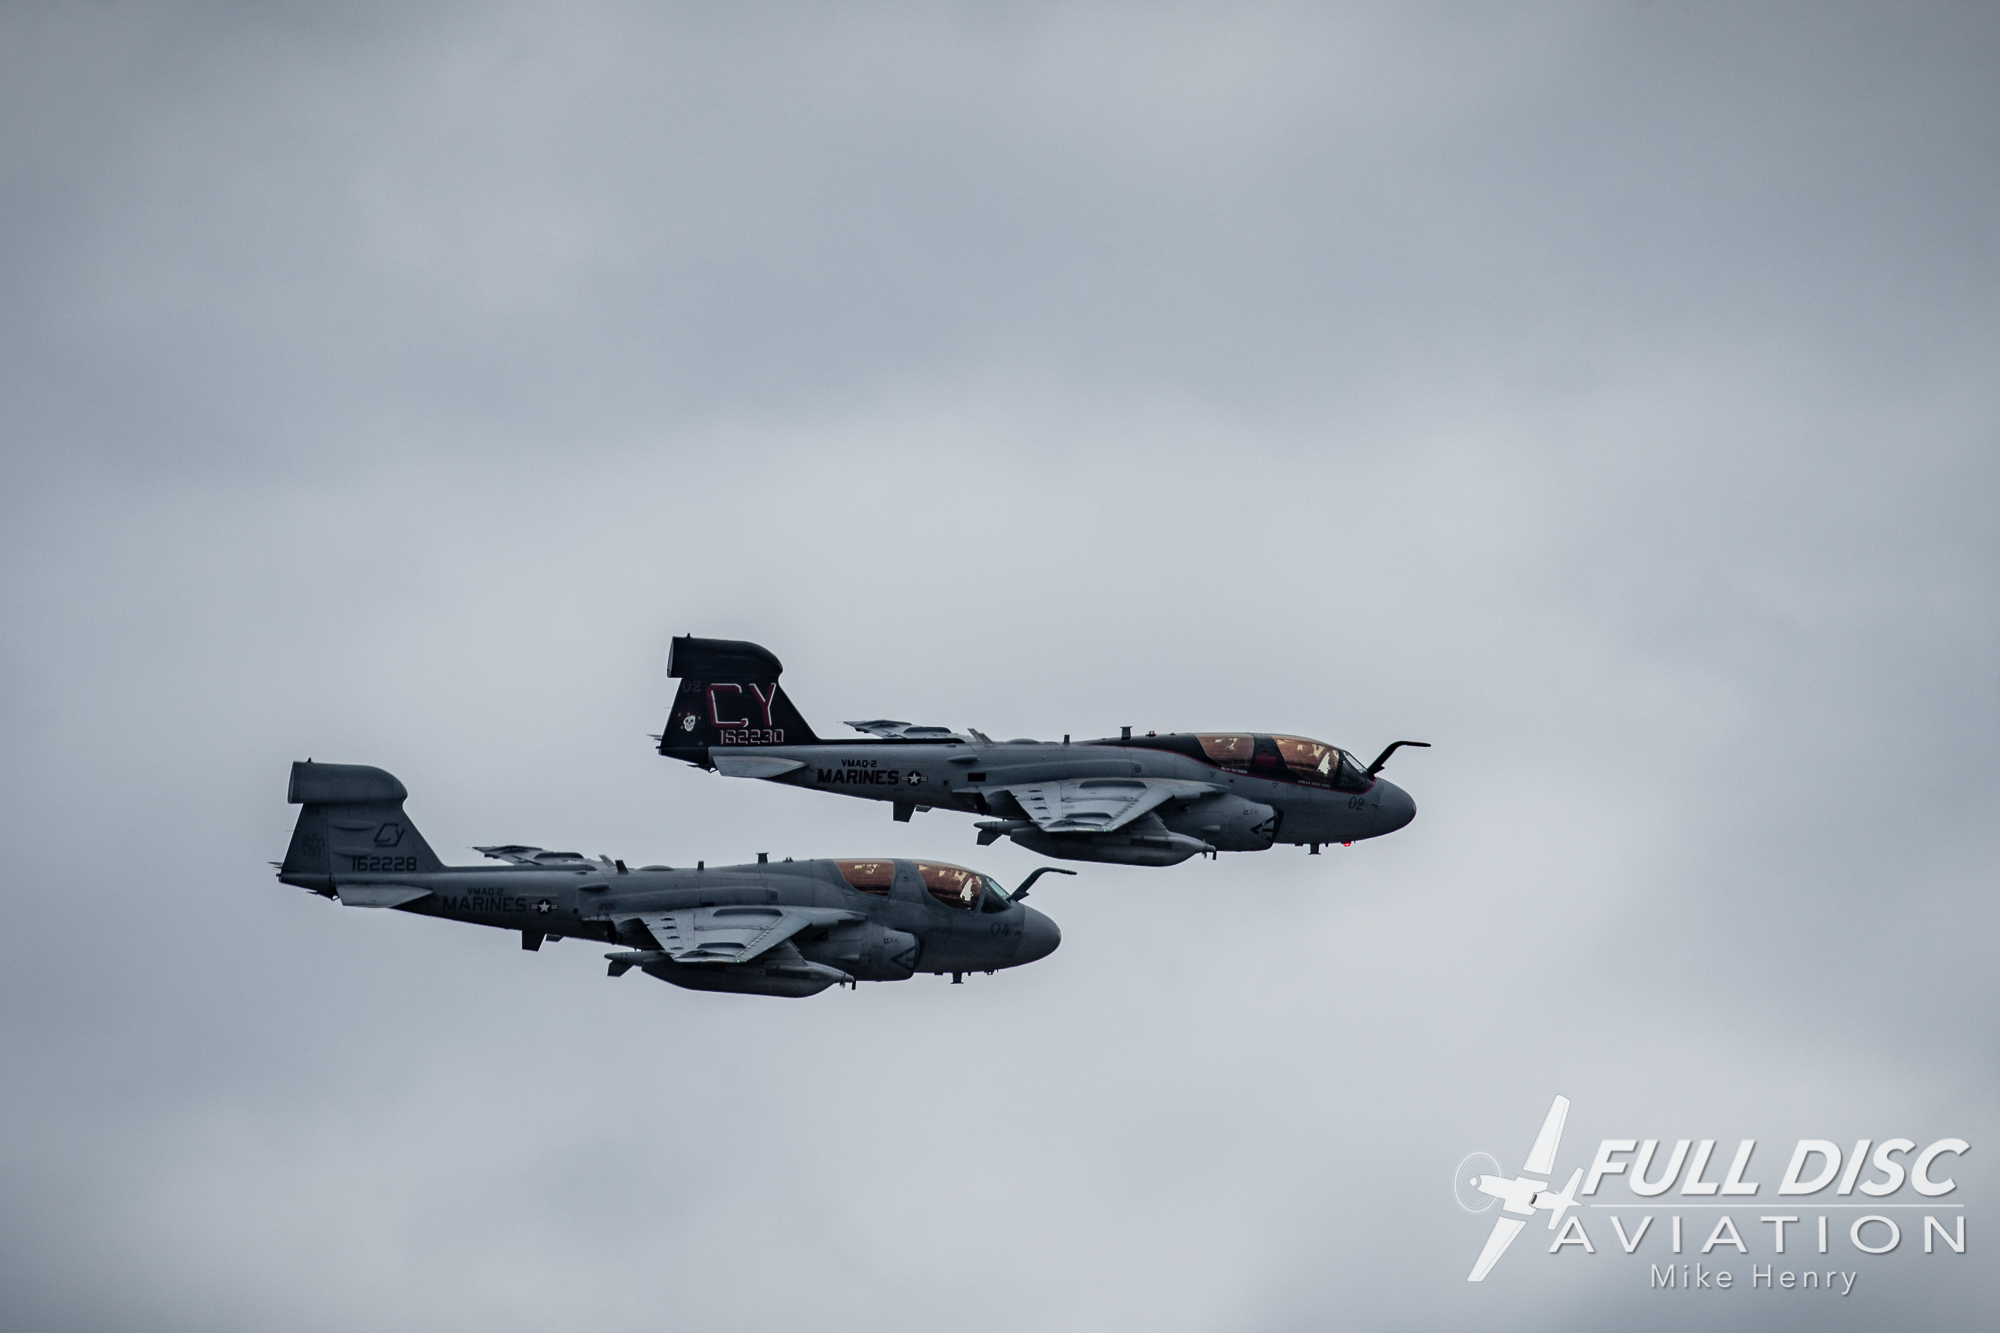 FullDiscAviation_ProwlerSundown_MikeHenry-March 08, 2019-29.jpg